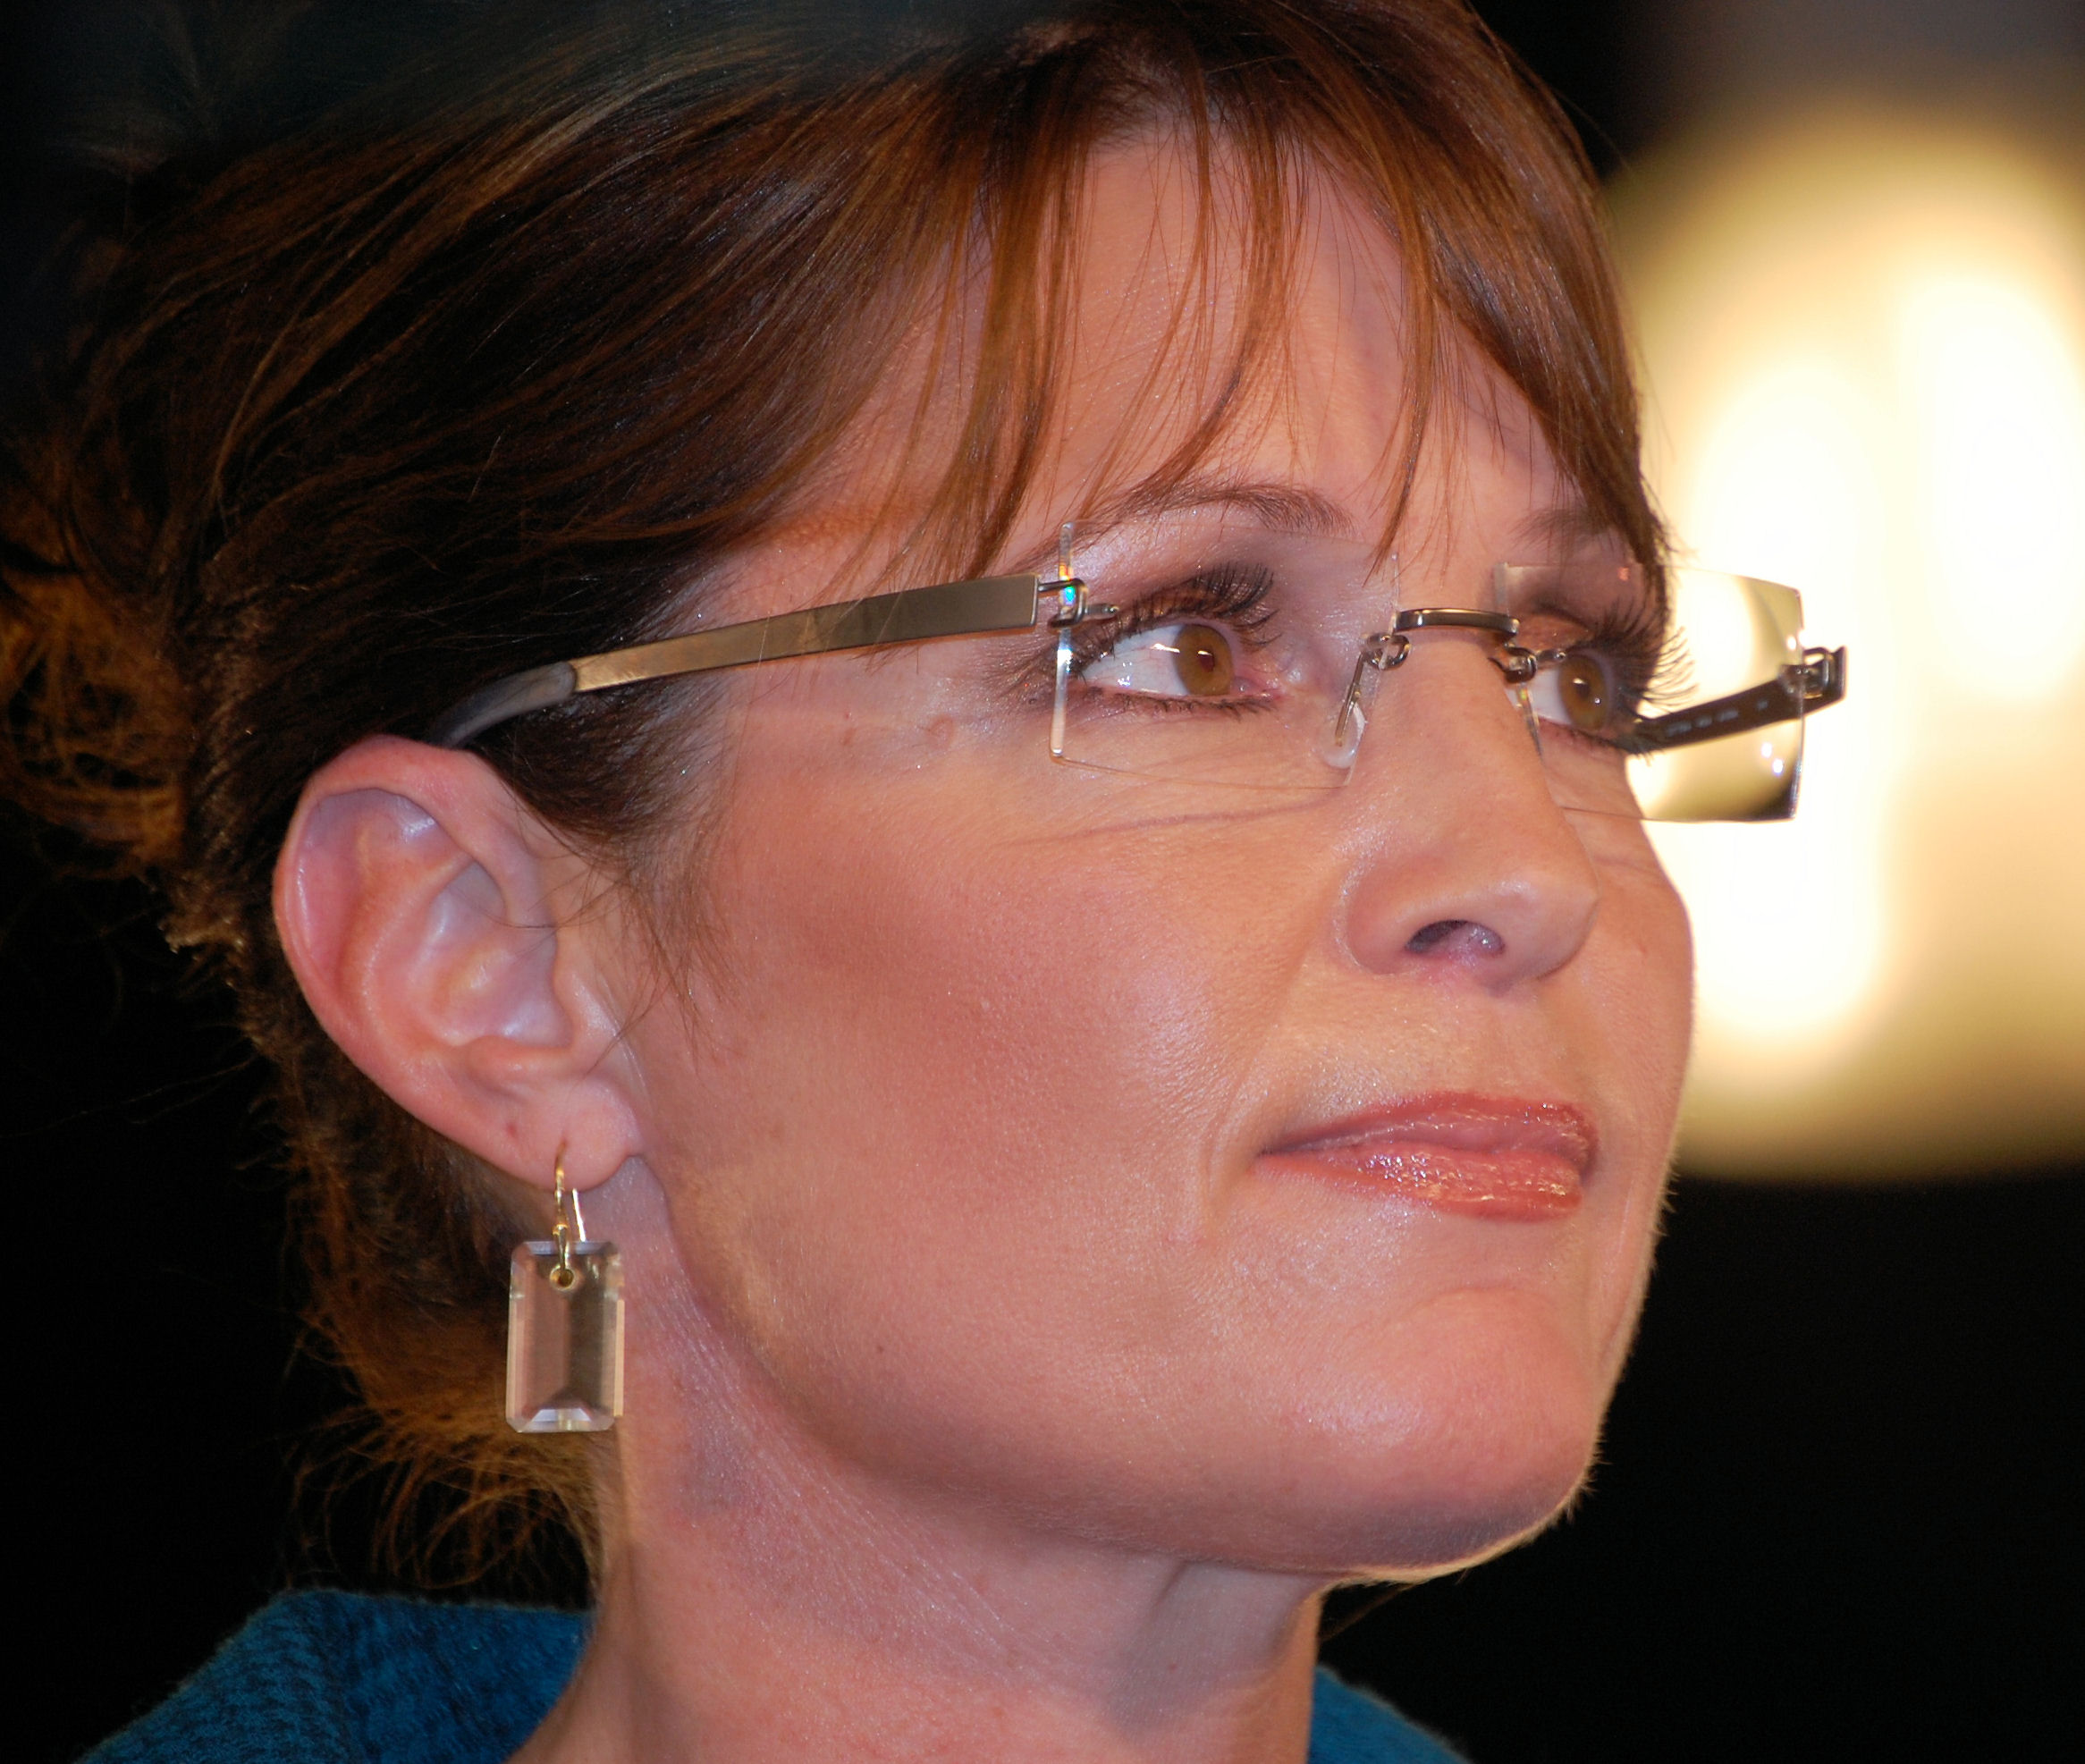 Sarah Palin won't run for president in 2012 | Georgia Straight Vancouver's News & Entertainment Weekly - SarahPalinRaleigh051011